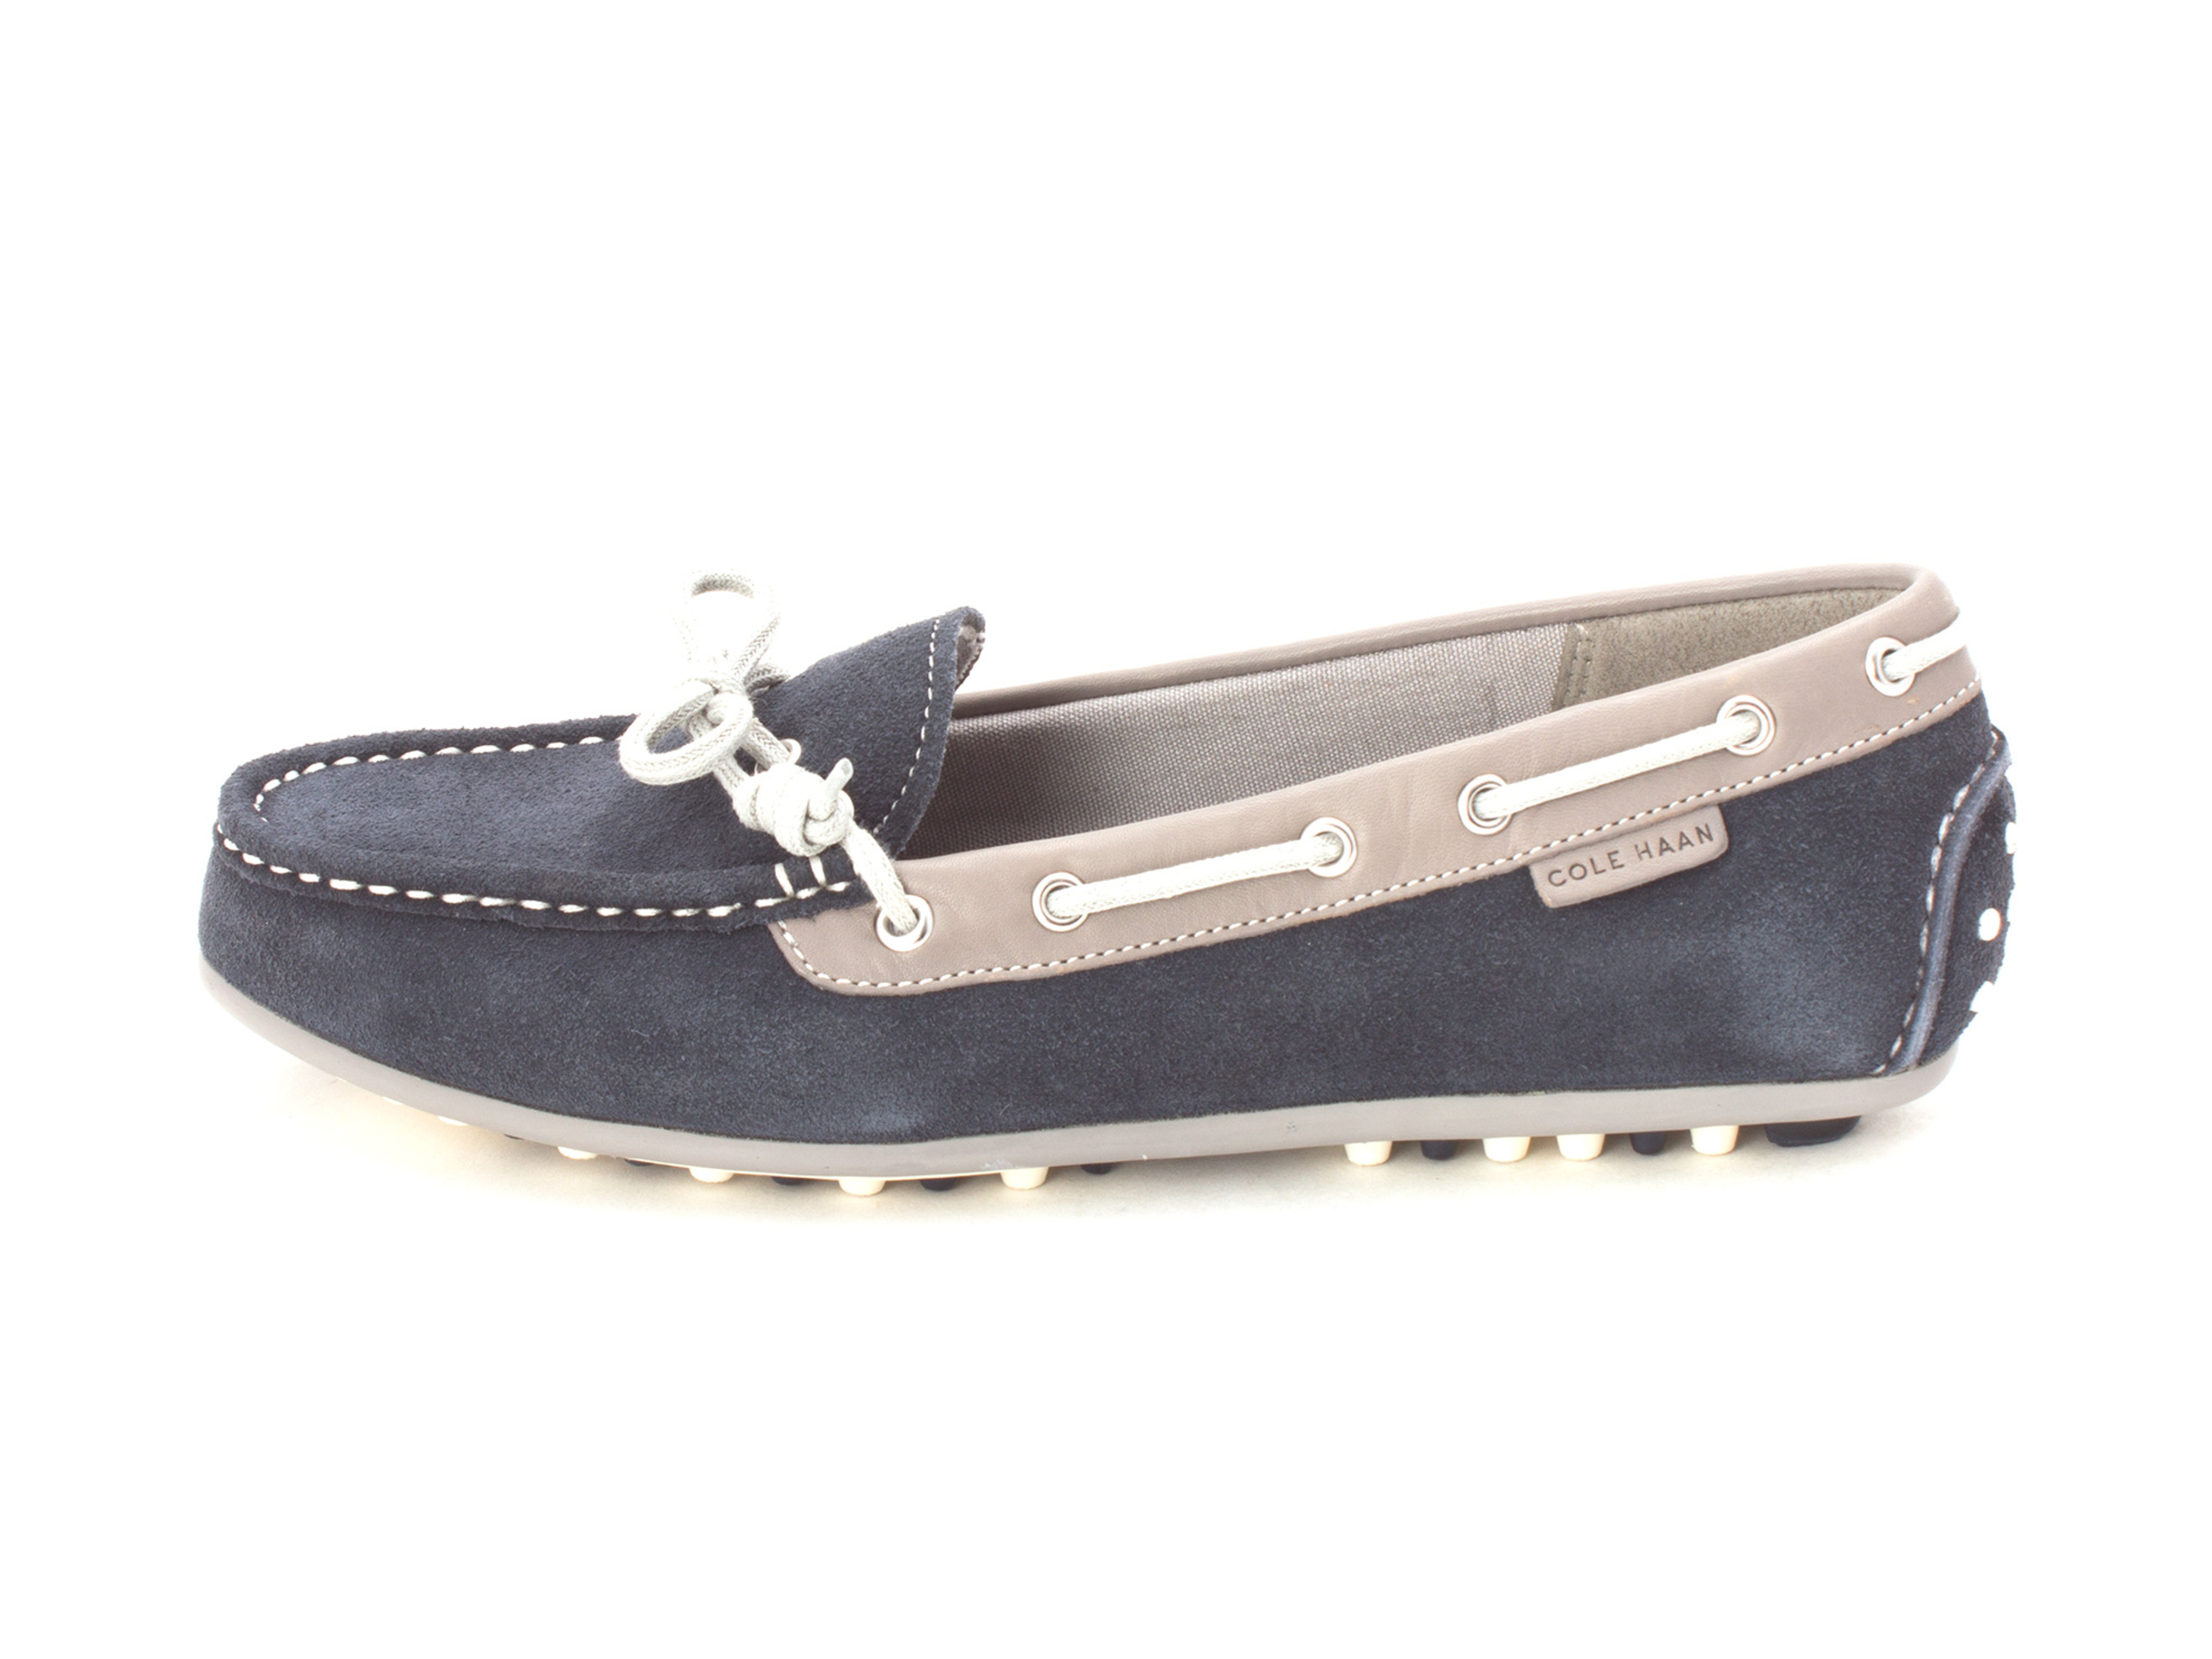 Cole Haan Boat Womens Biancasam Closed Toe Boat Haan Shoes:2018 New:Men's/Women's 3004dc